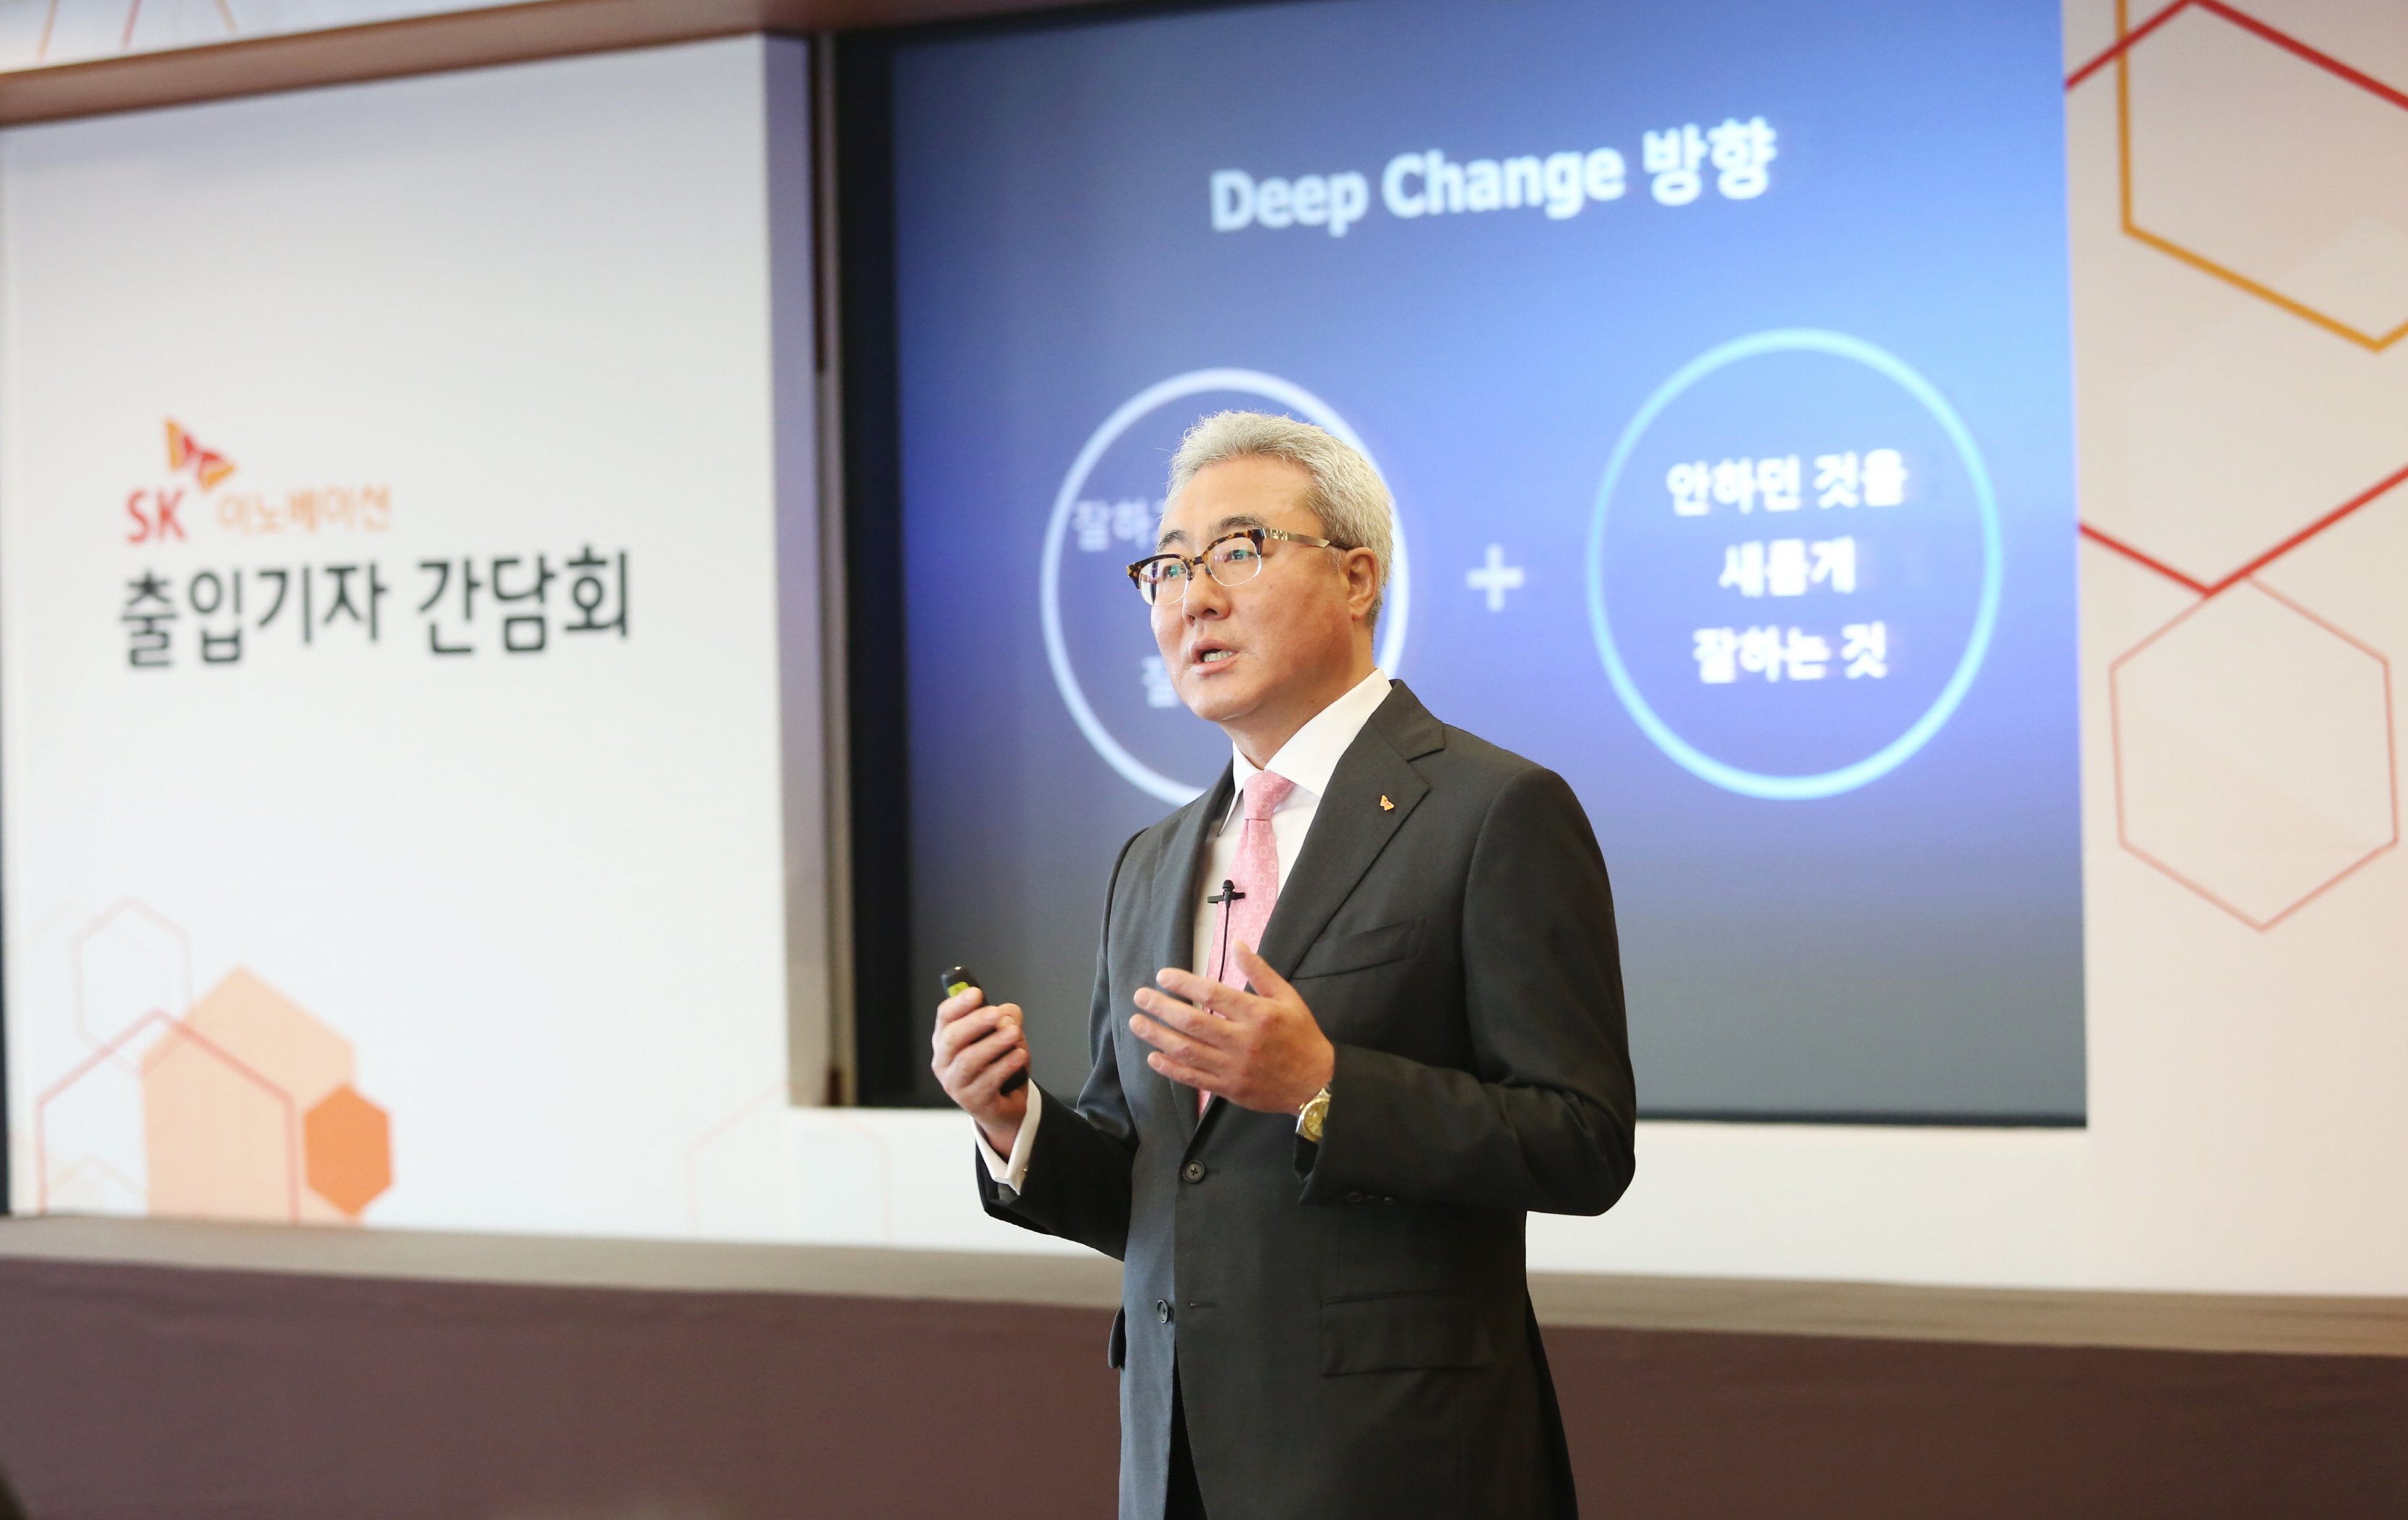 SK Innovation president Kim Jun said that the company plans to expand its share of the global battery market to 30 percent by 2025 at a press conference at the SK headquarters in Seoul on May 30.